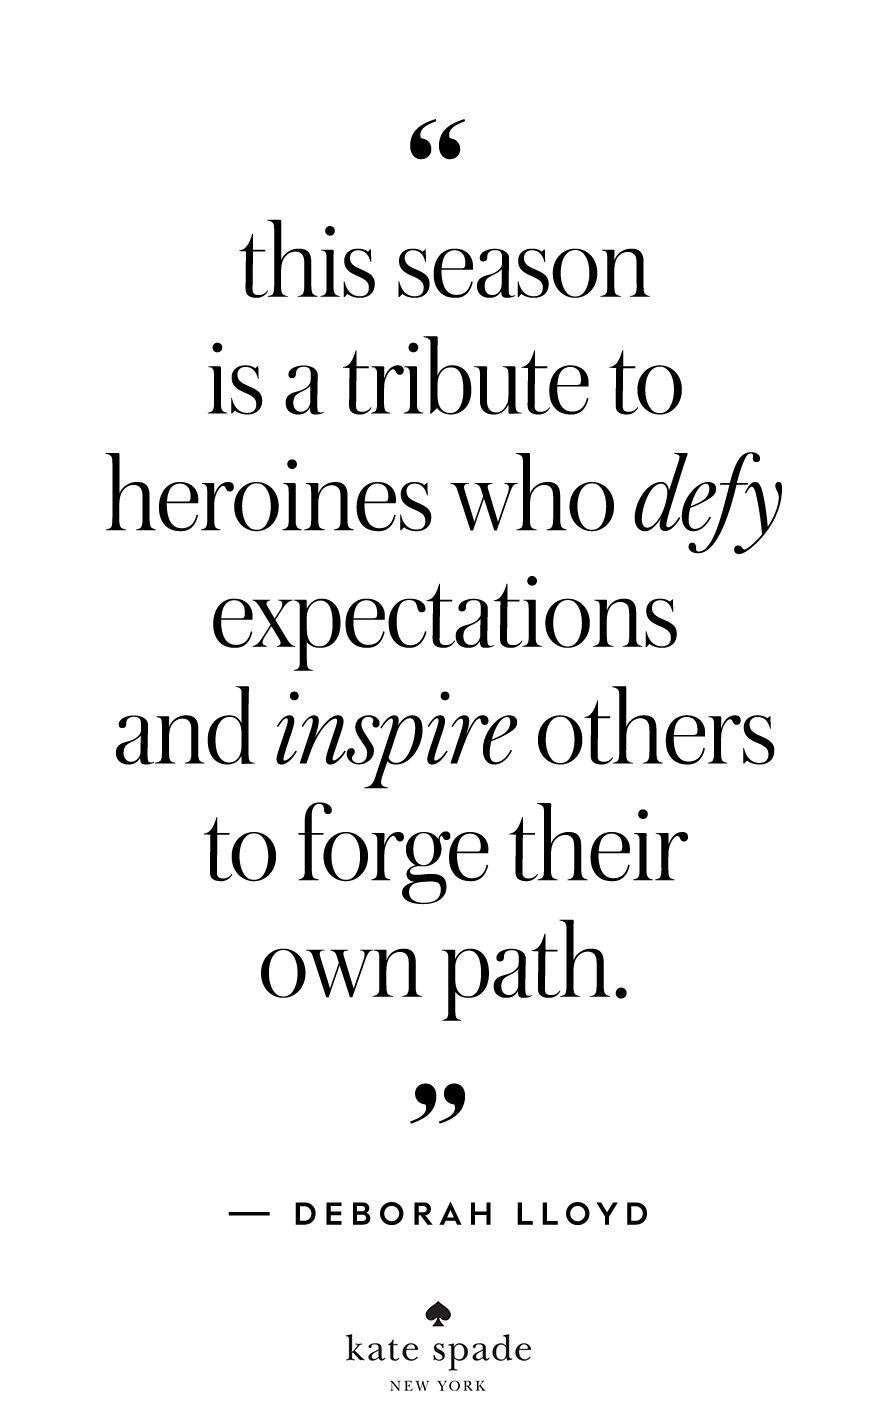 Kate Spade Quotes Deborah Lloyd  Inspiration Board  Pinterest  Wise Words Wisdom